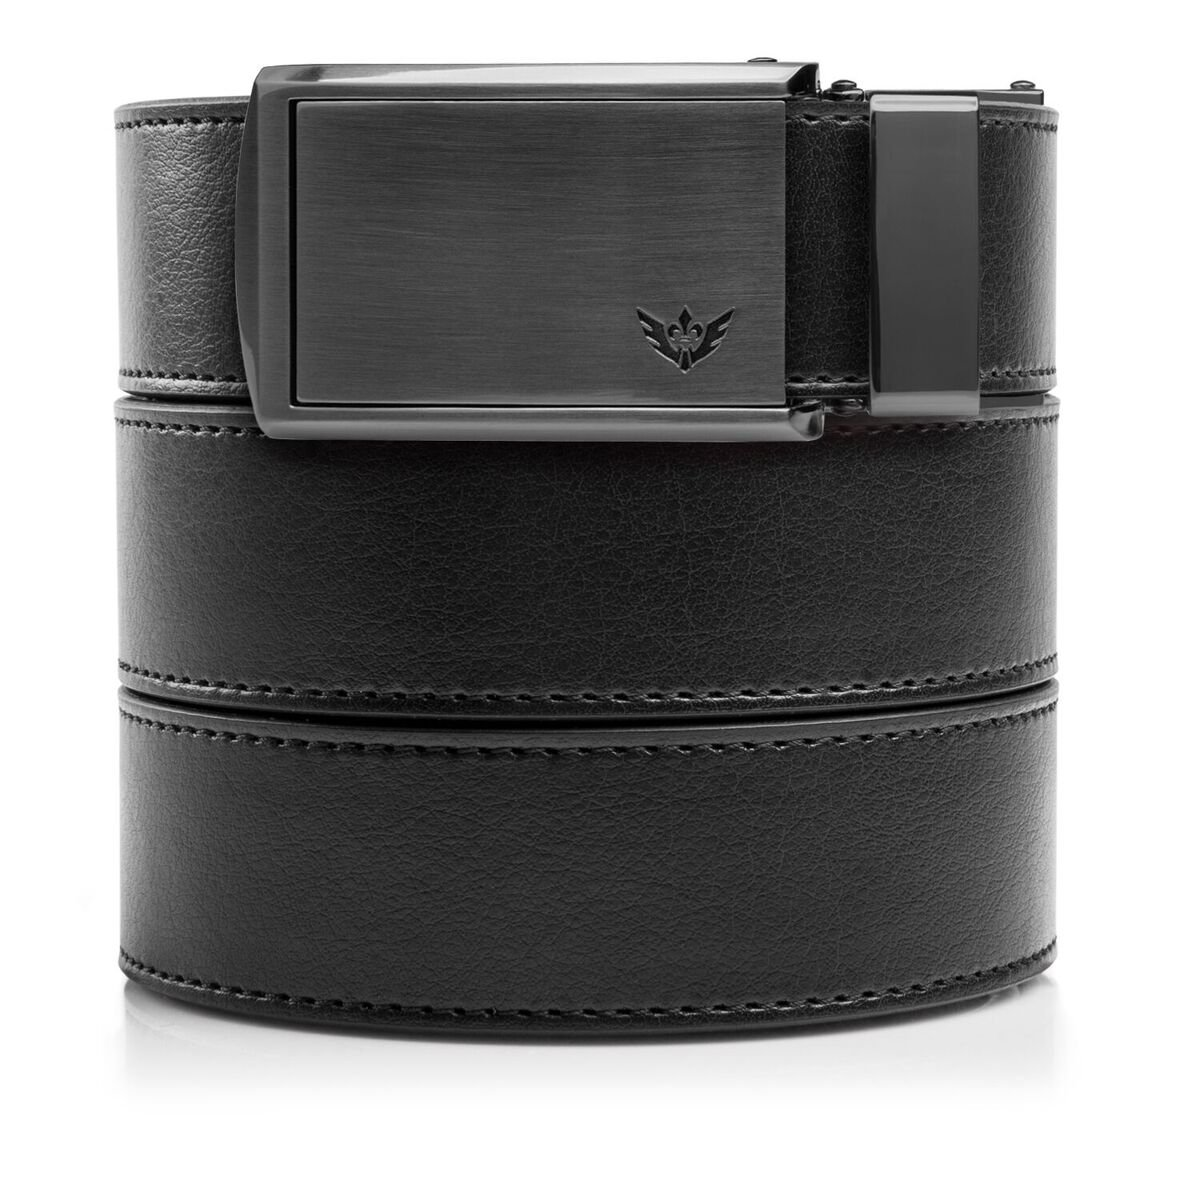 SlideBelts Men's Leather Ratchet Belt SB-MochaSilver